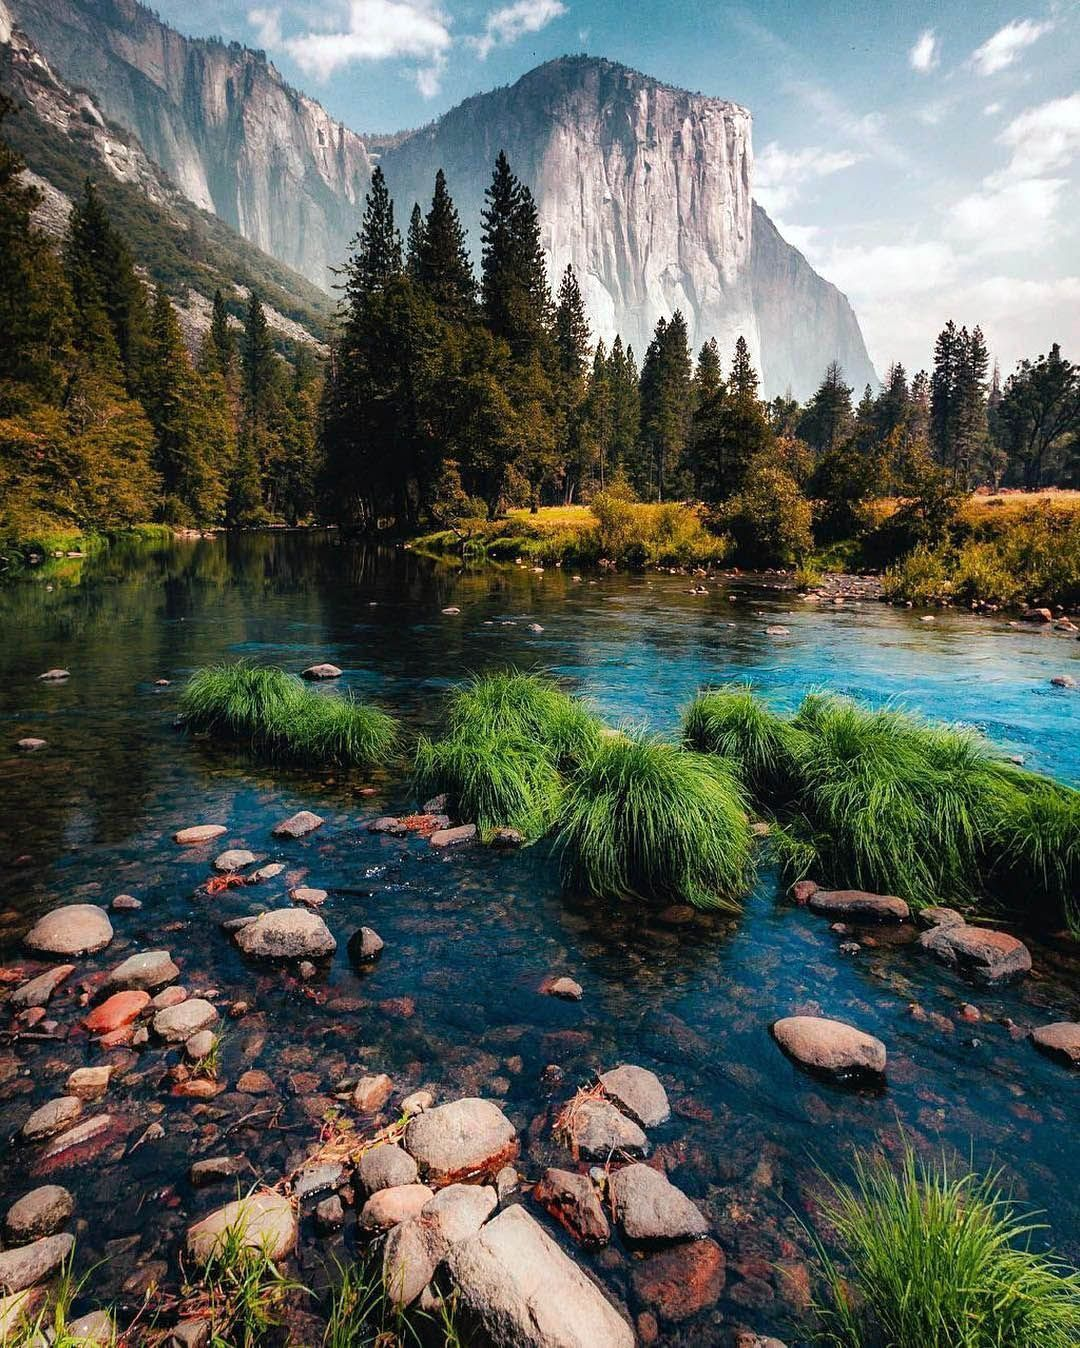 The Most Beautiful Places in Yosemite National Park America\u2019s national parks transform 100 years of ages this year. As well as in addition to obtaining a passionate happy birthday from their favorite overweight TV weatherman, the National Park\u2026 #beautifulplaces